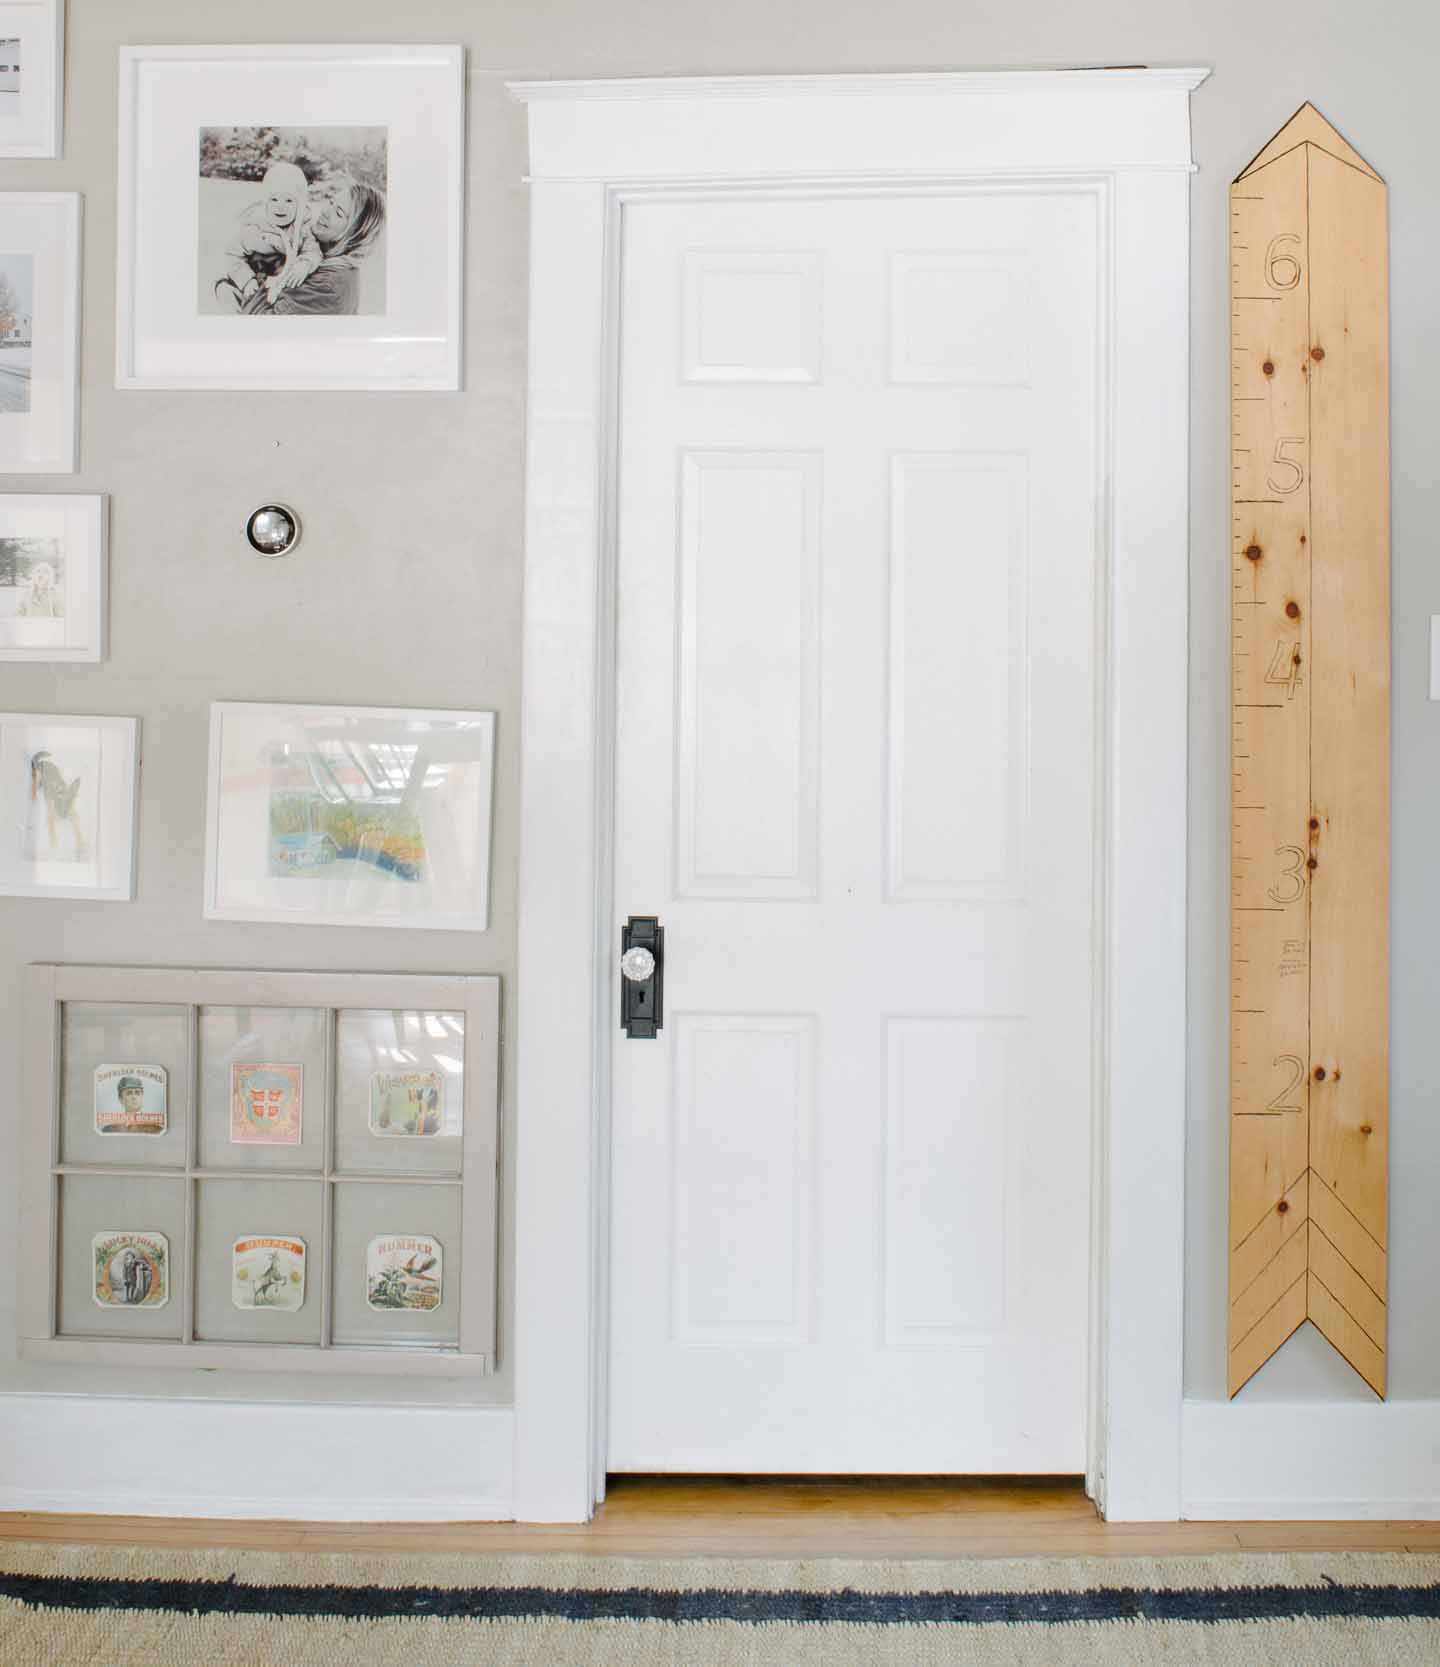 Crooked framed bedroom door